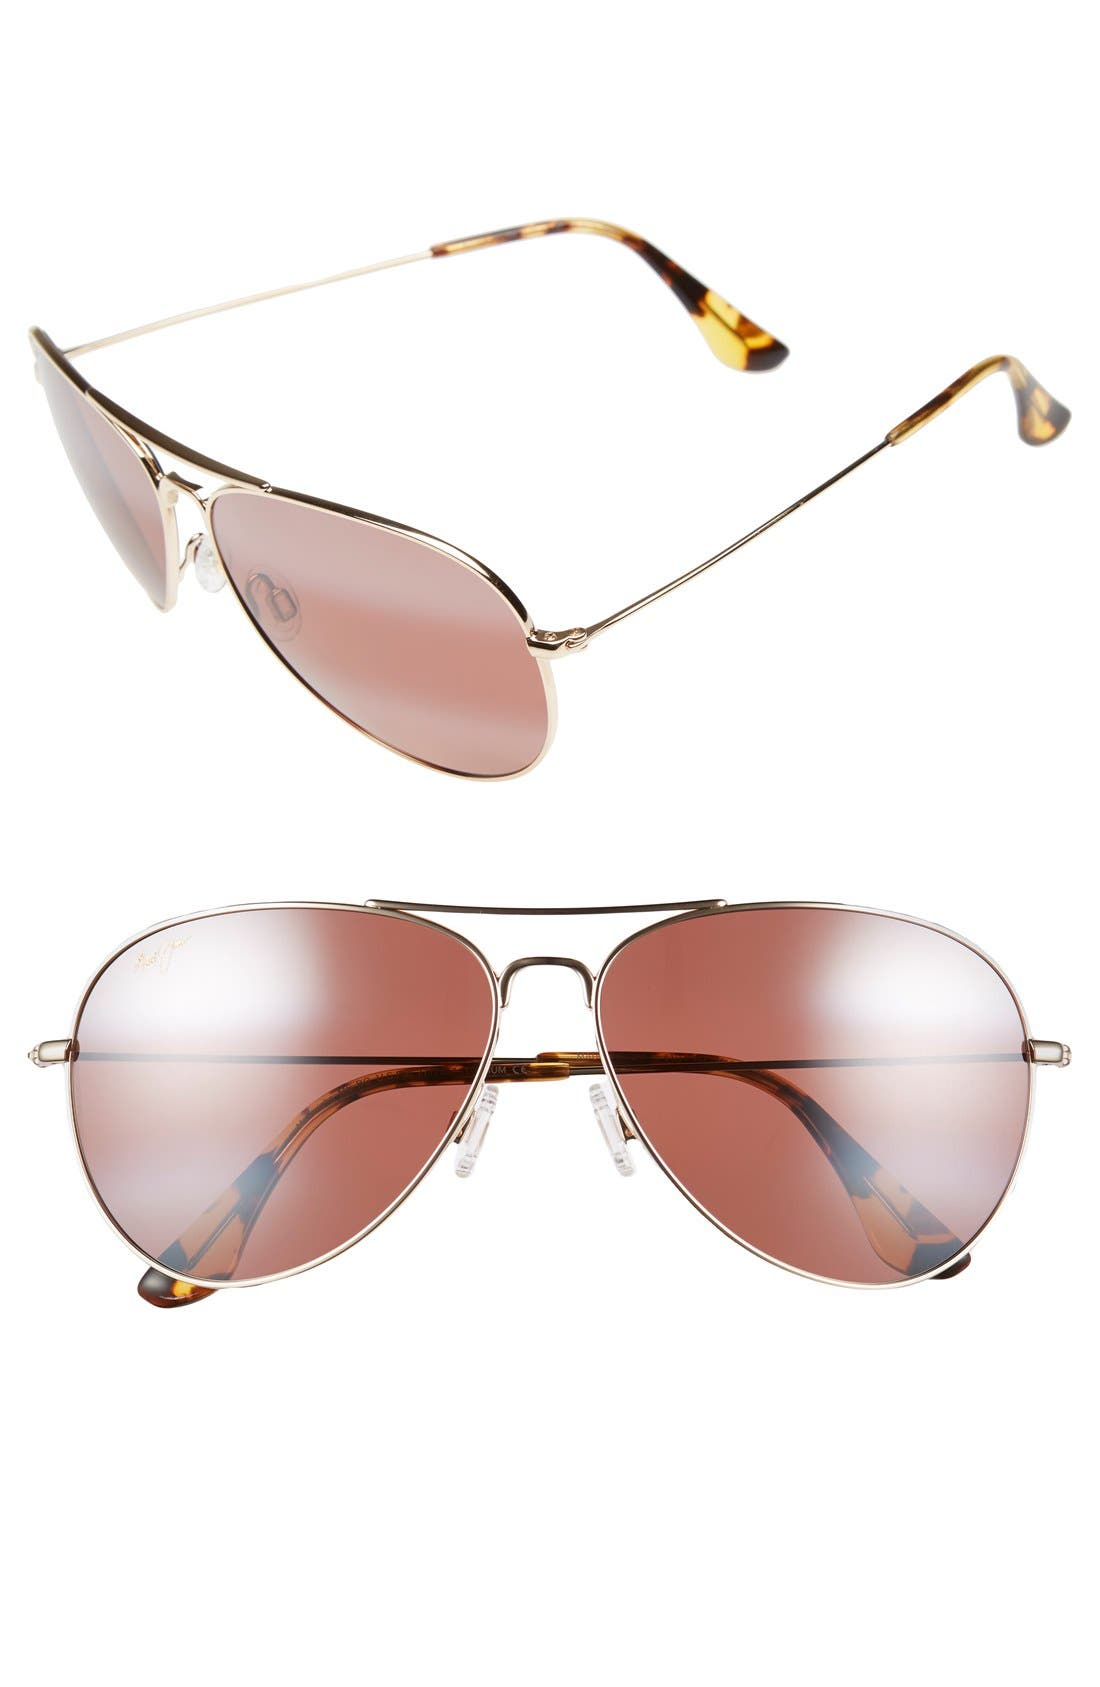 MAVERICKS 61MM POLARIZEDPLUS2 AVIATOR SUNGLASSES - GOLD/ MAUI ROSE